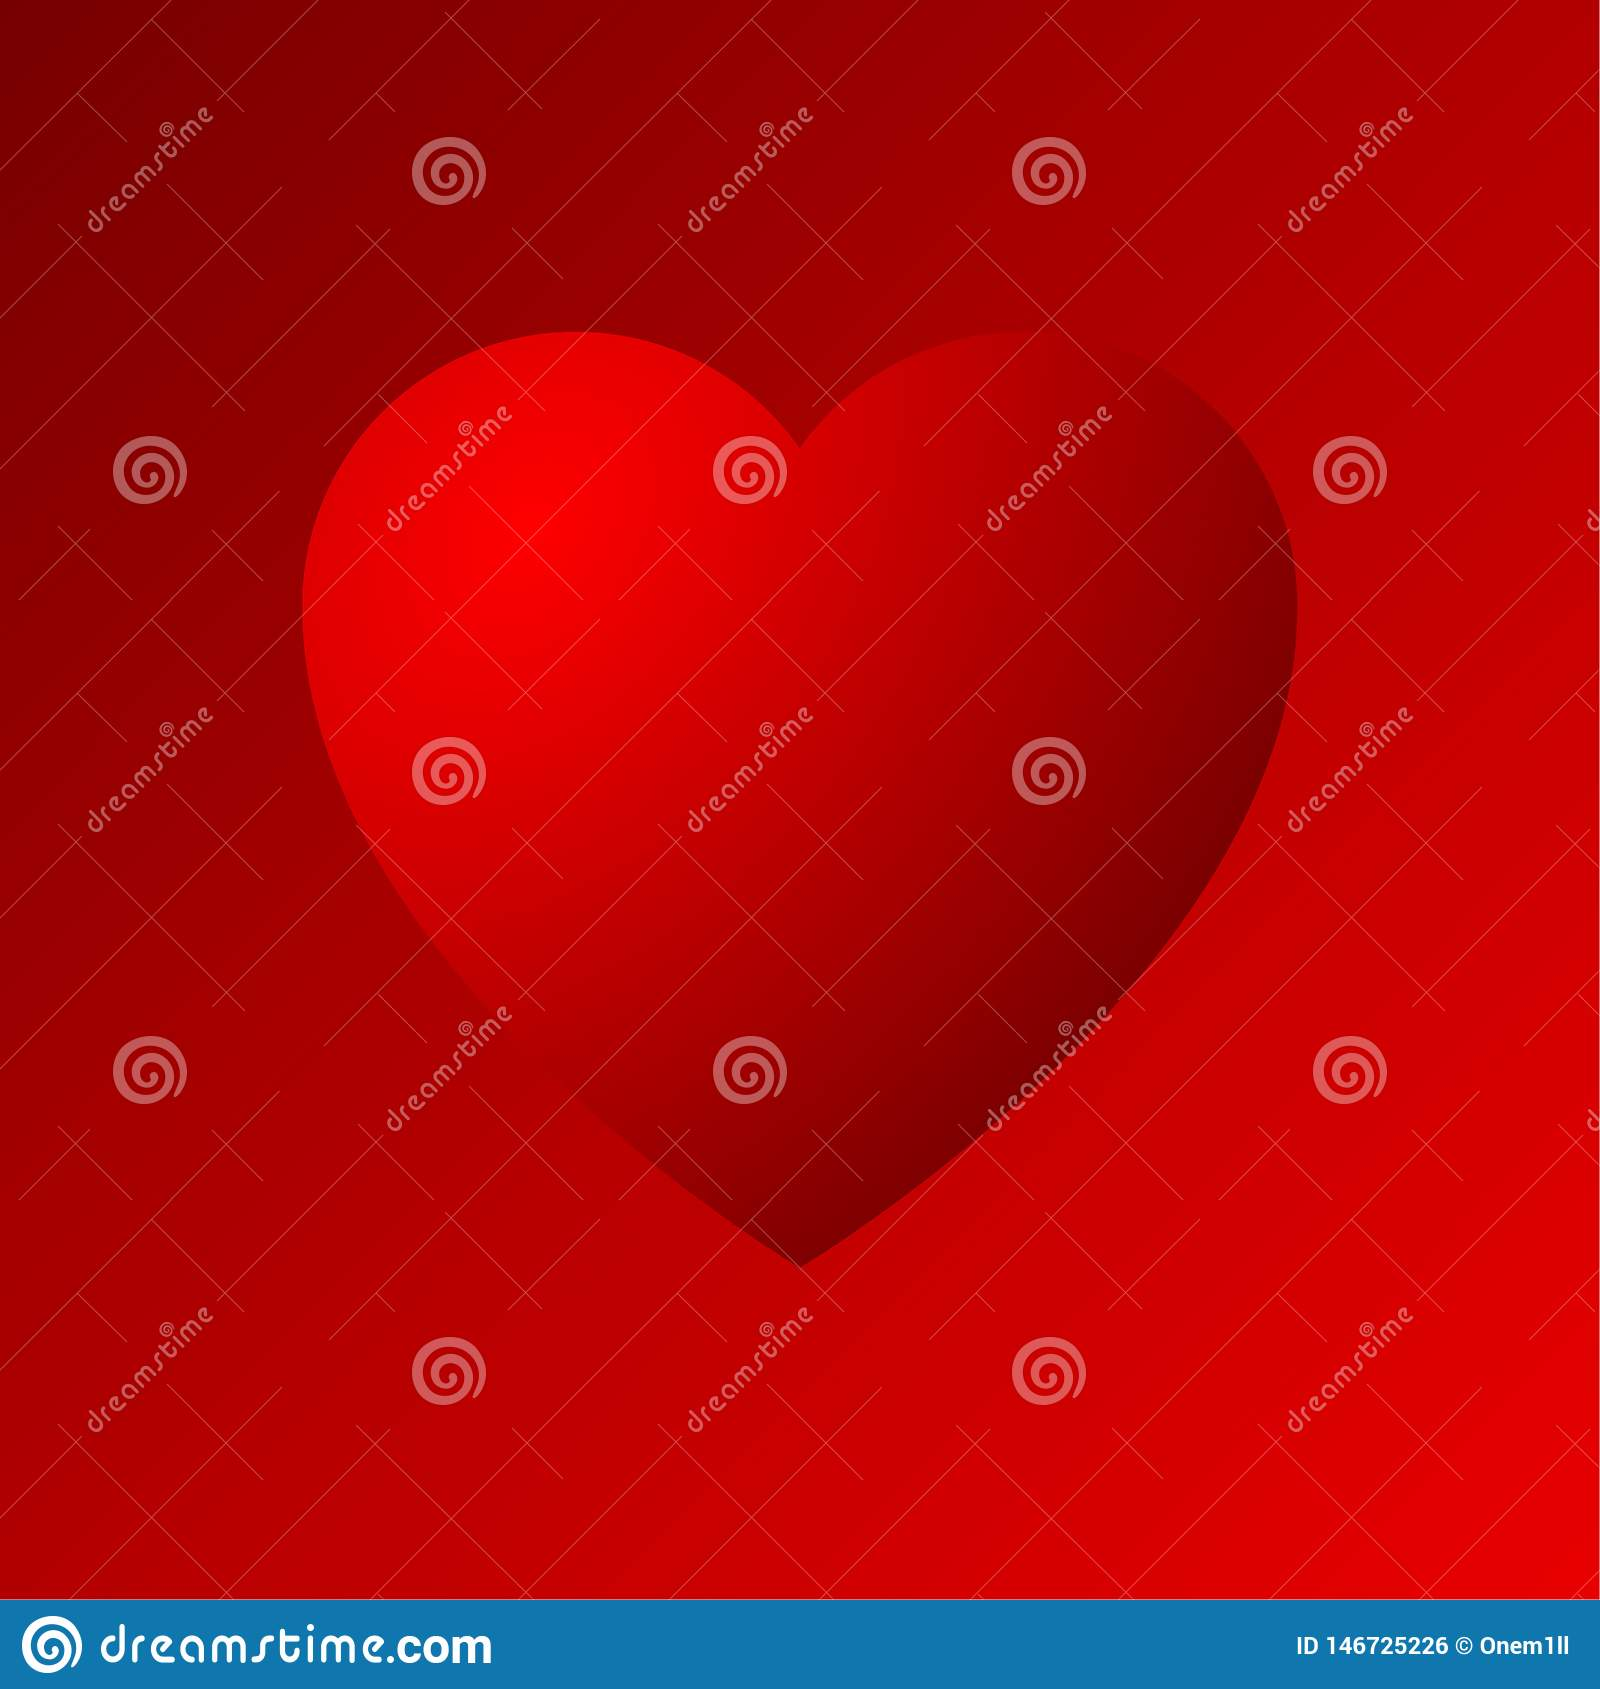 Red heart dradient icon